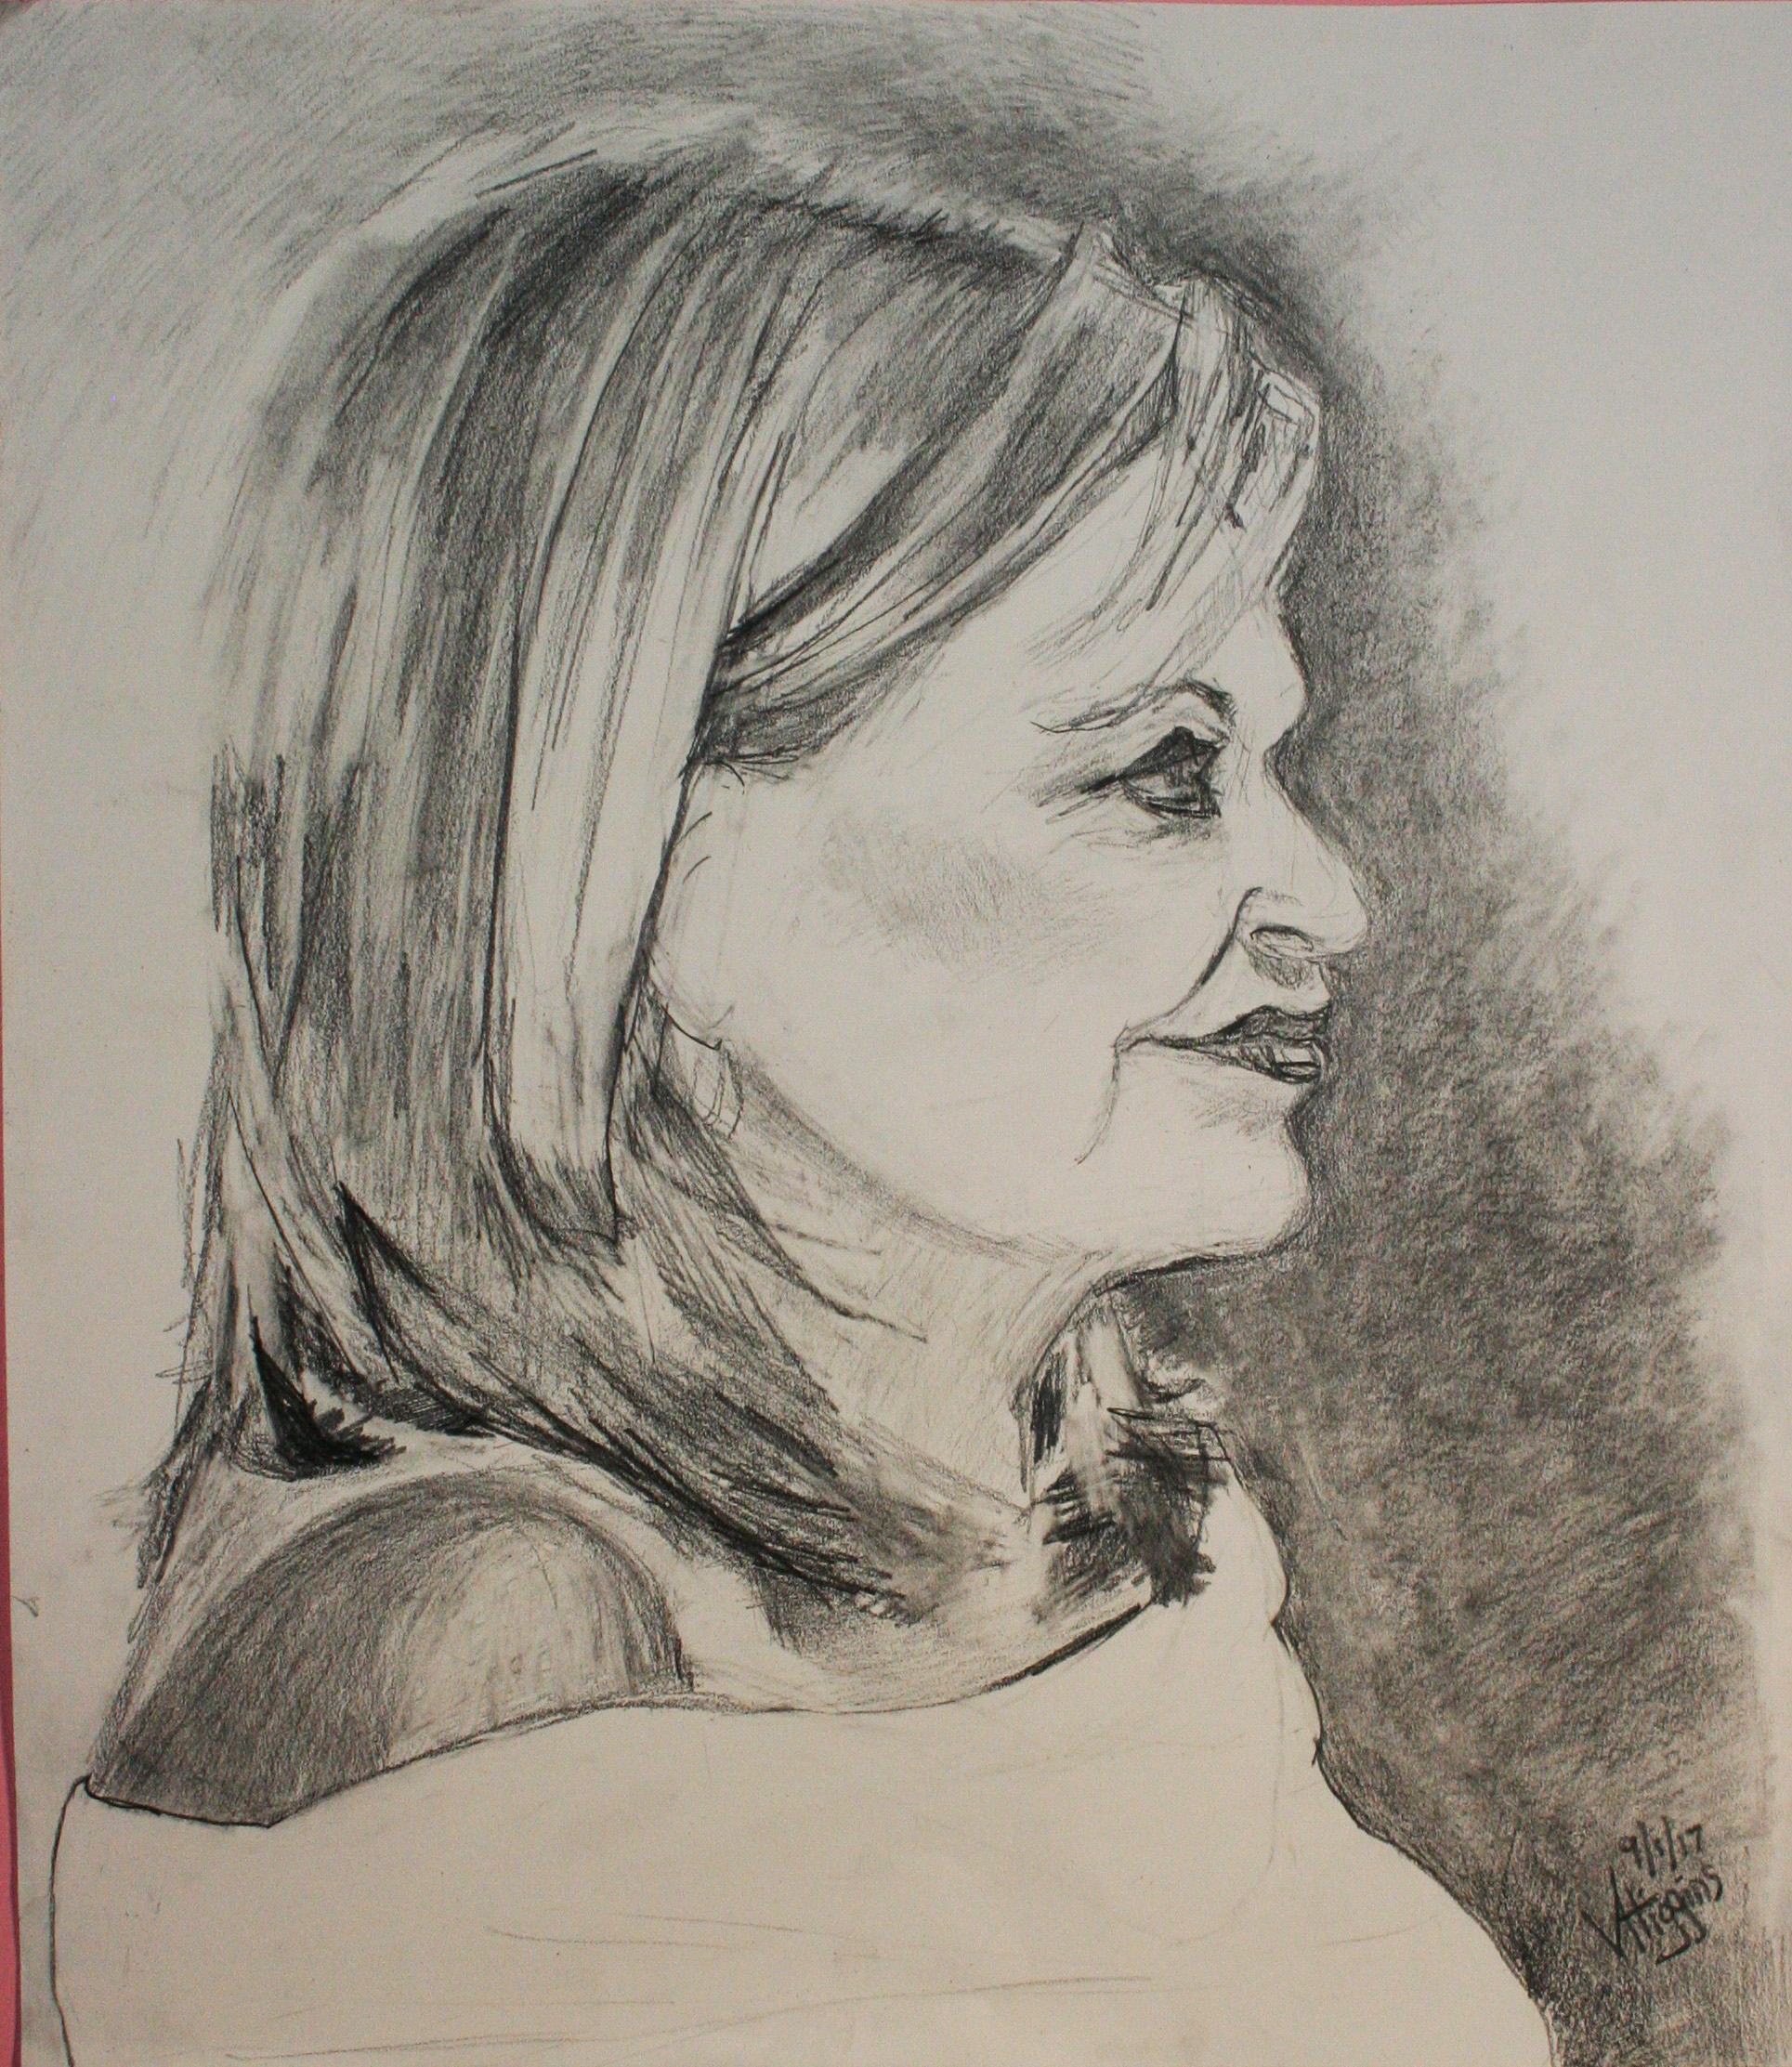 Victoria Higgins did this two and a half hour conte drawing.